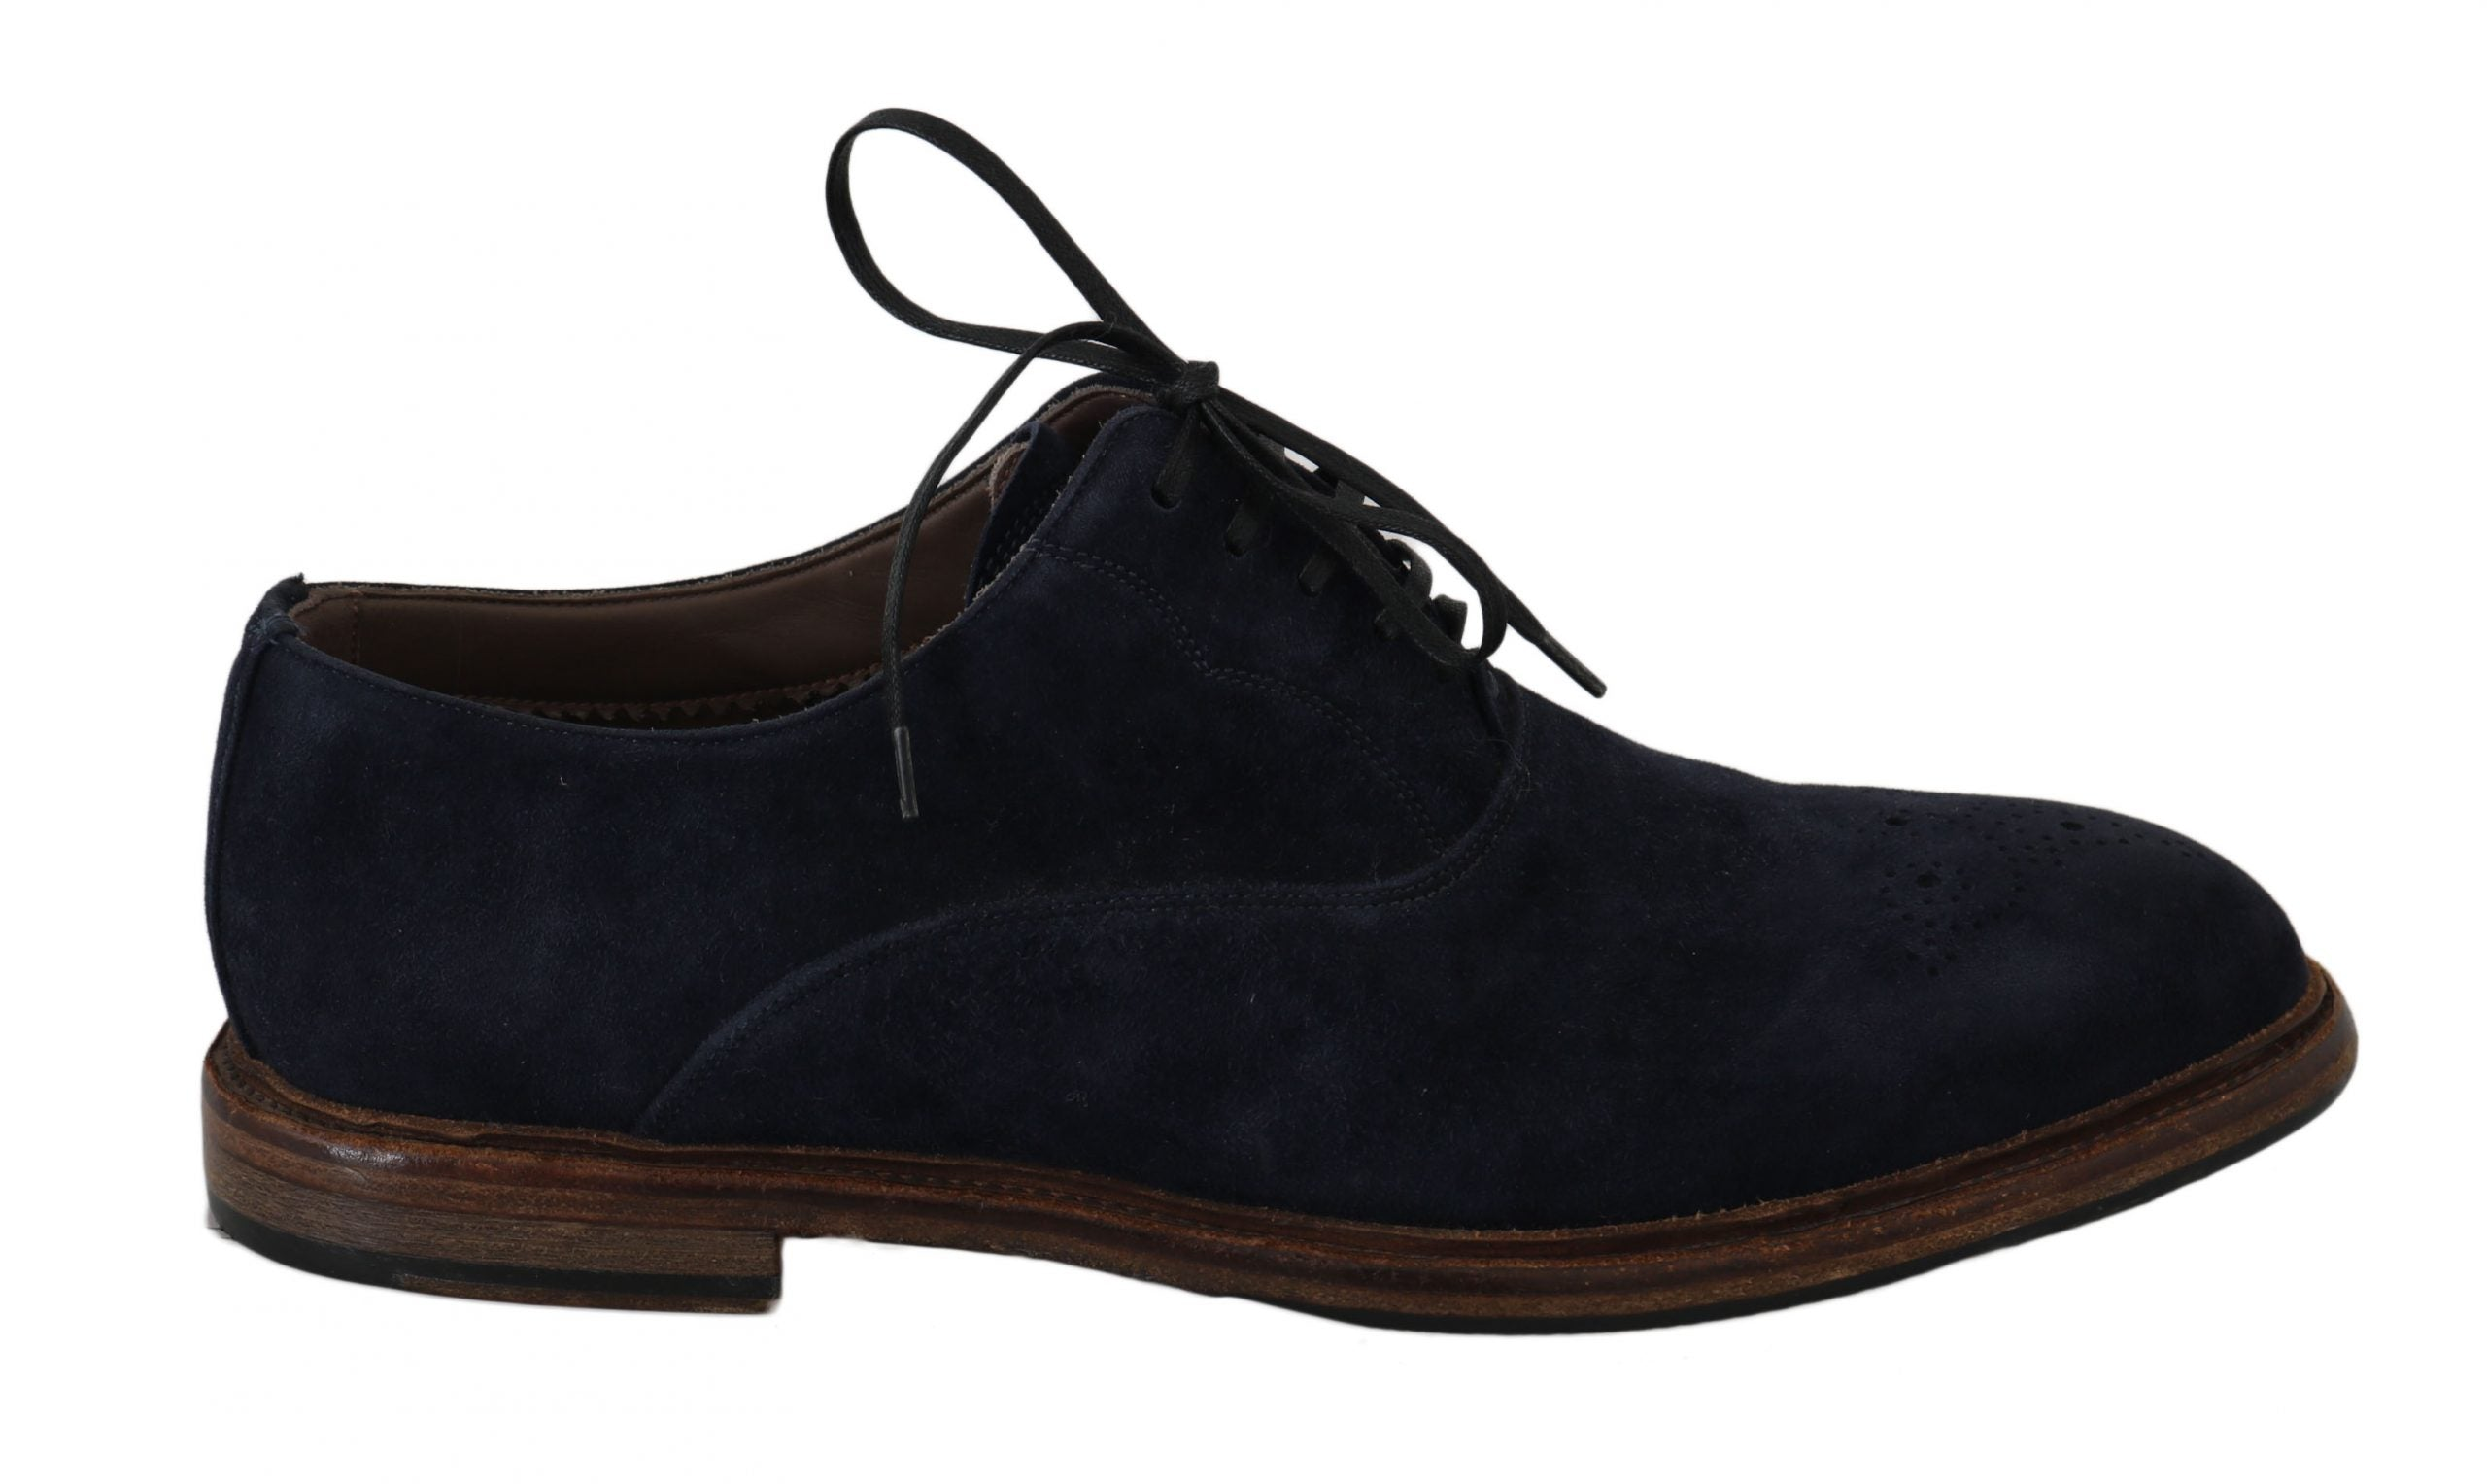 Image of Dolce & Gabbana Blue Leather Marsala Derby Goatskin Shoes